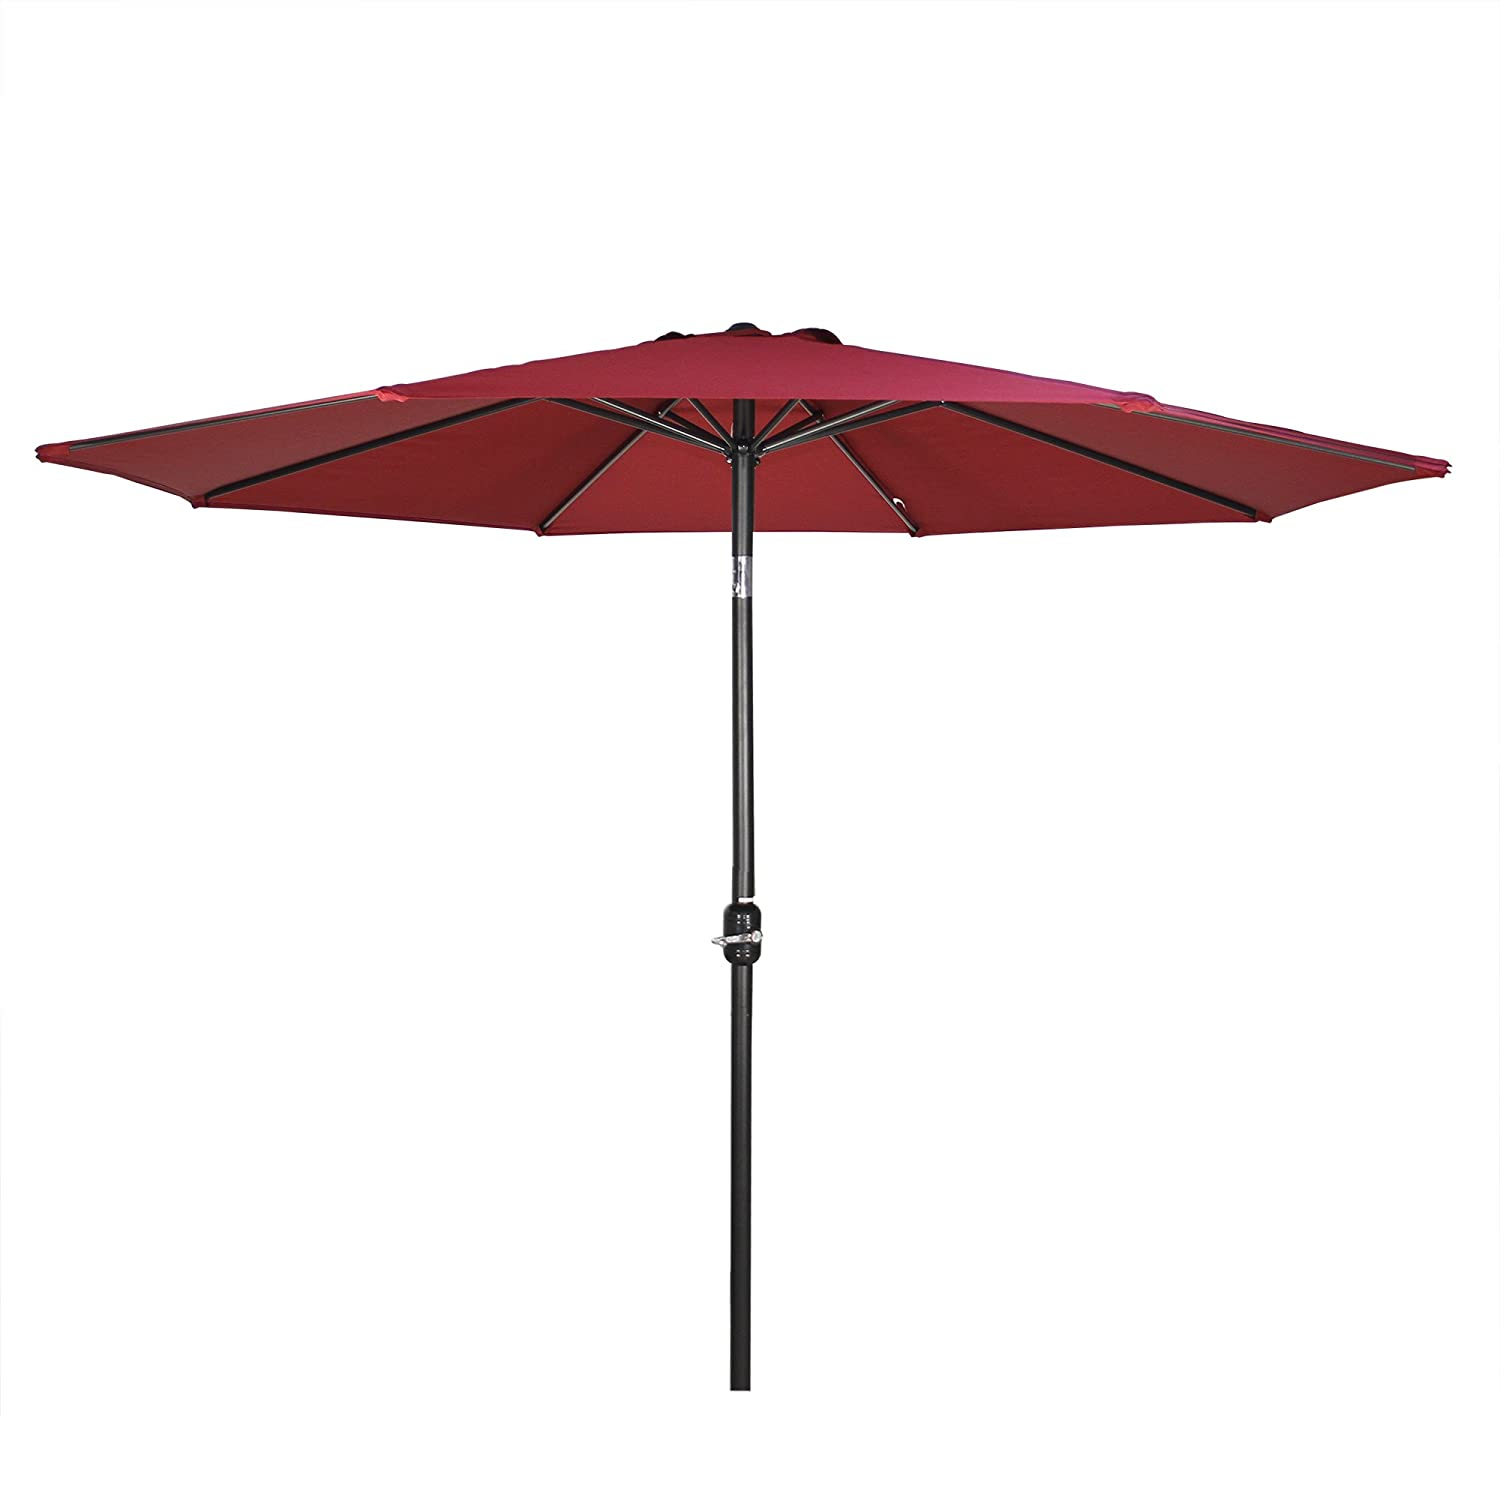 G-House 9 Ft Garden Patio Umbrella Outdoor Table Umbrella with Push Button Tilt and Crank, Sturdy Steel, 8 Ribs Wine Red